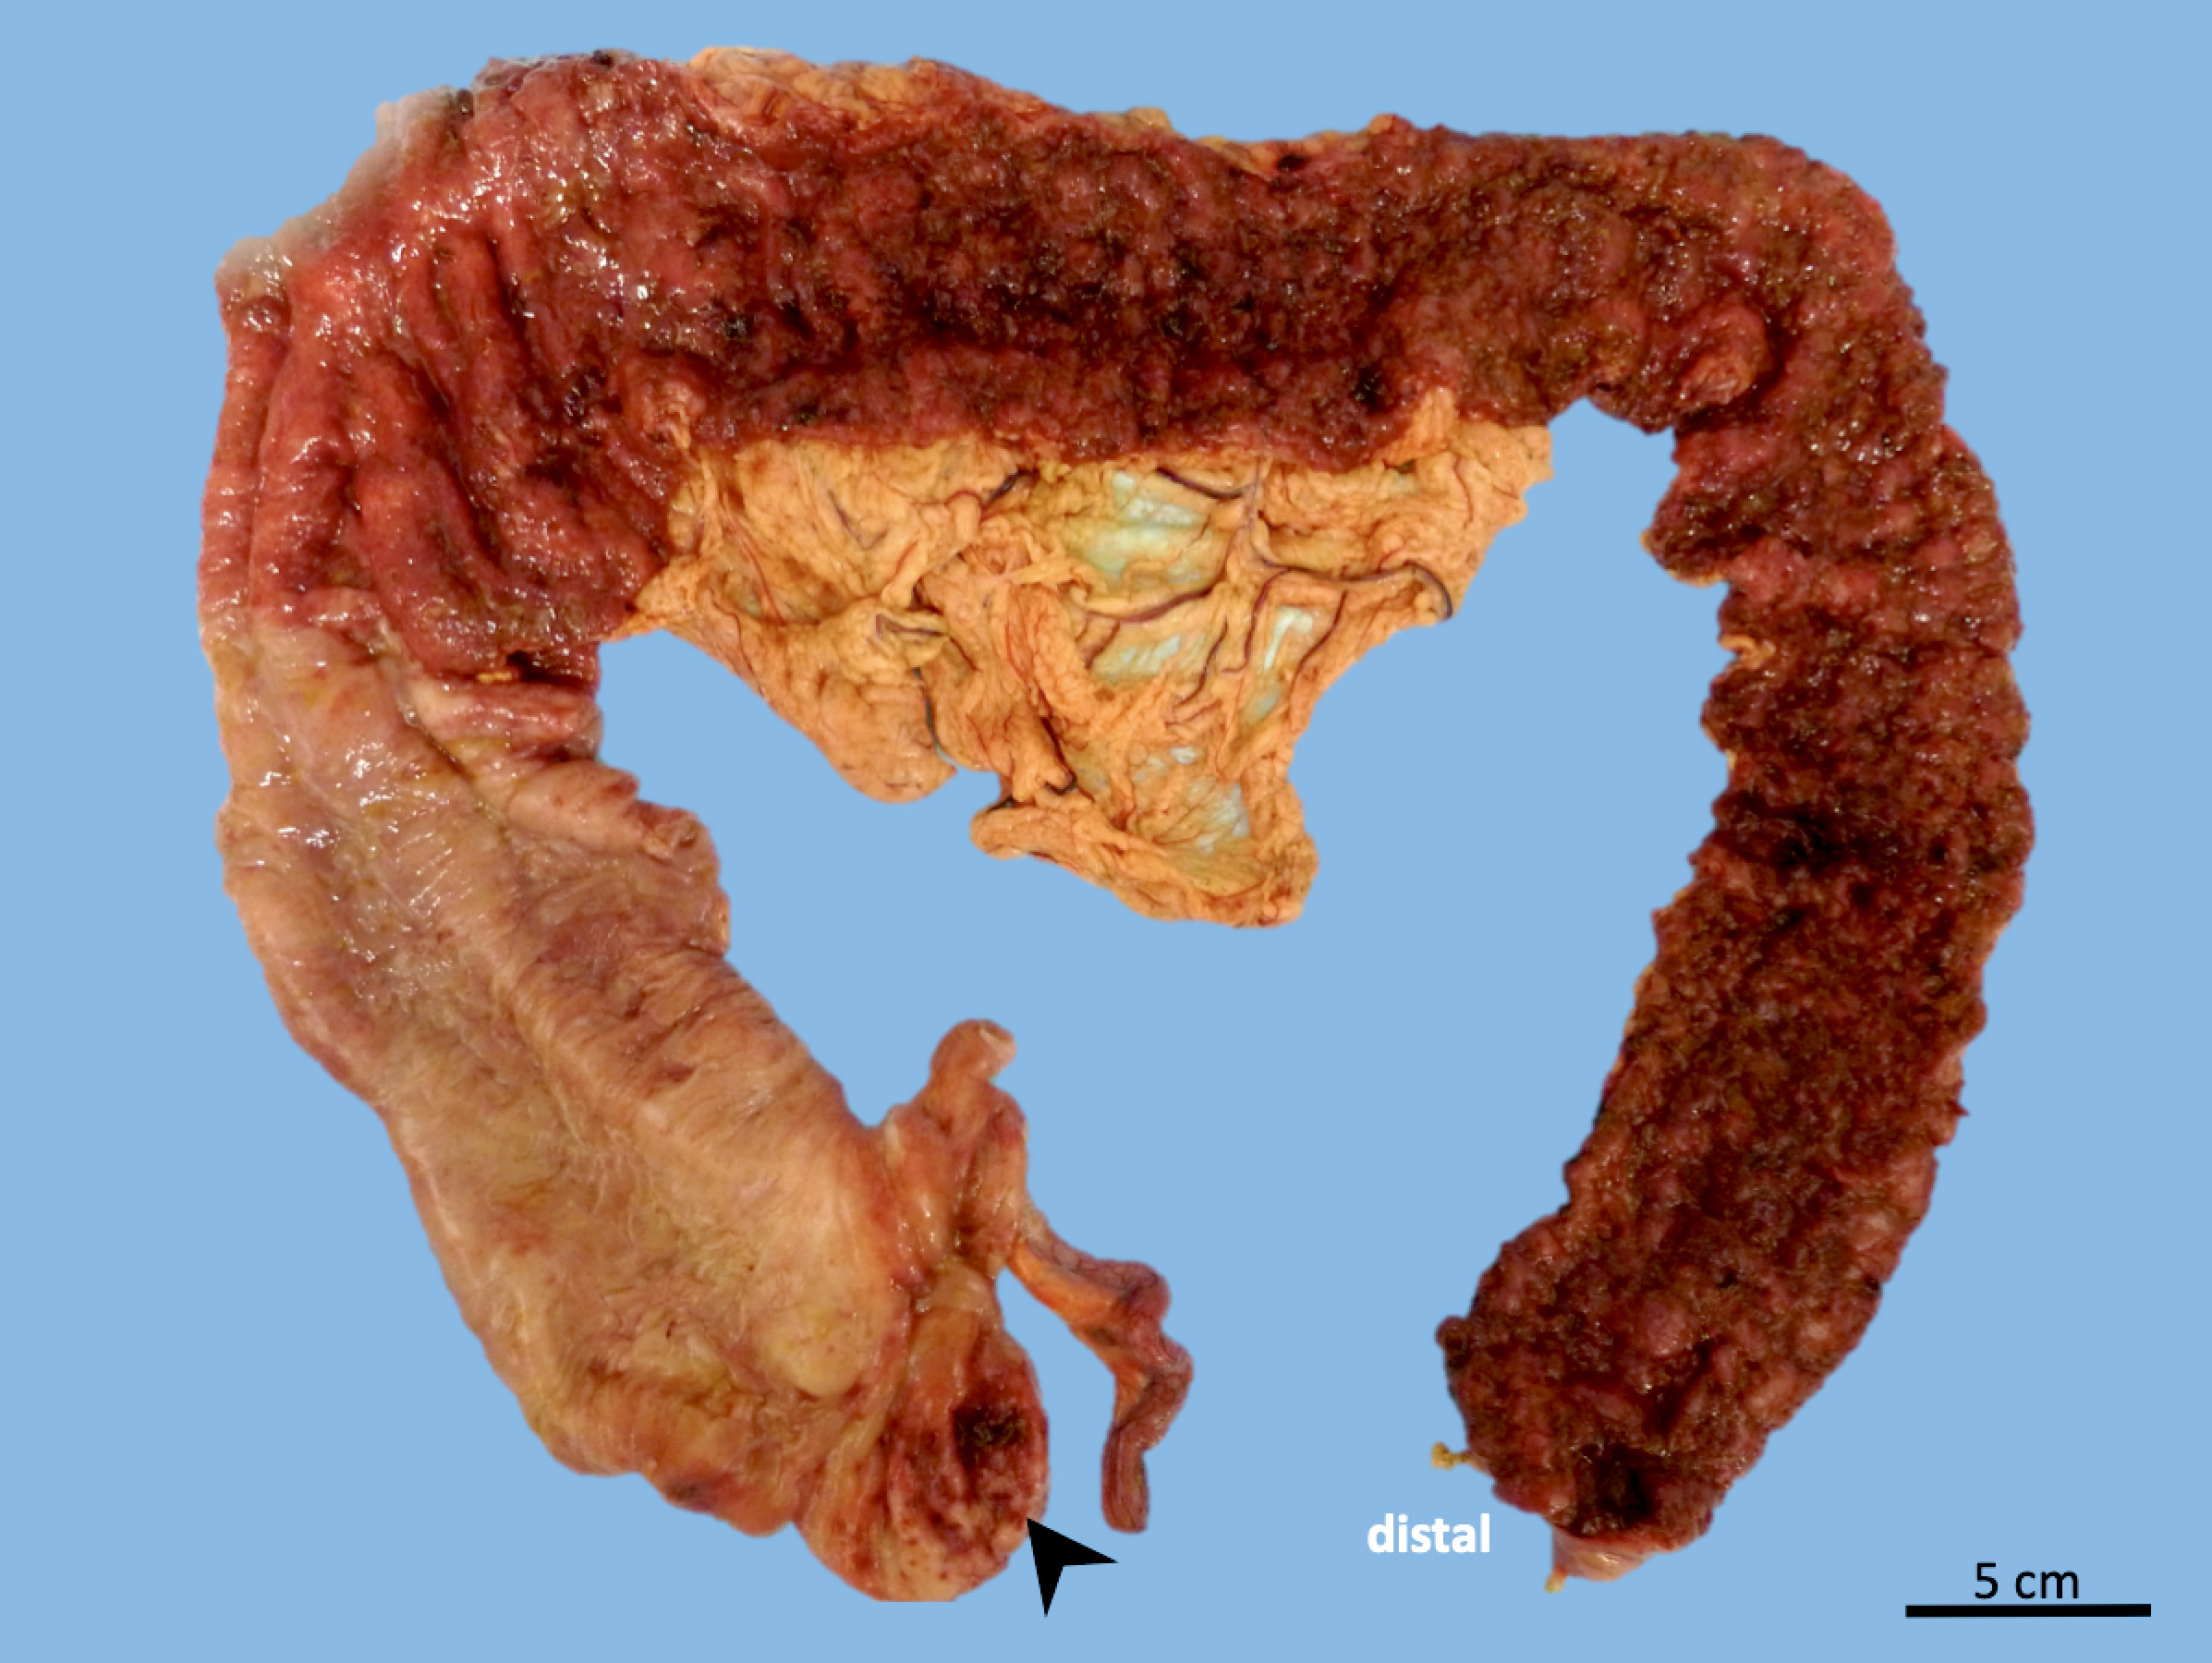 Ulcerative colitis with cecal patch